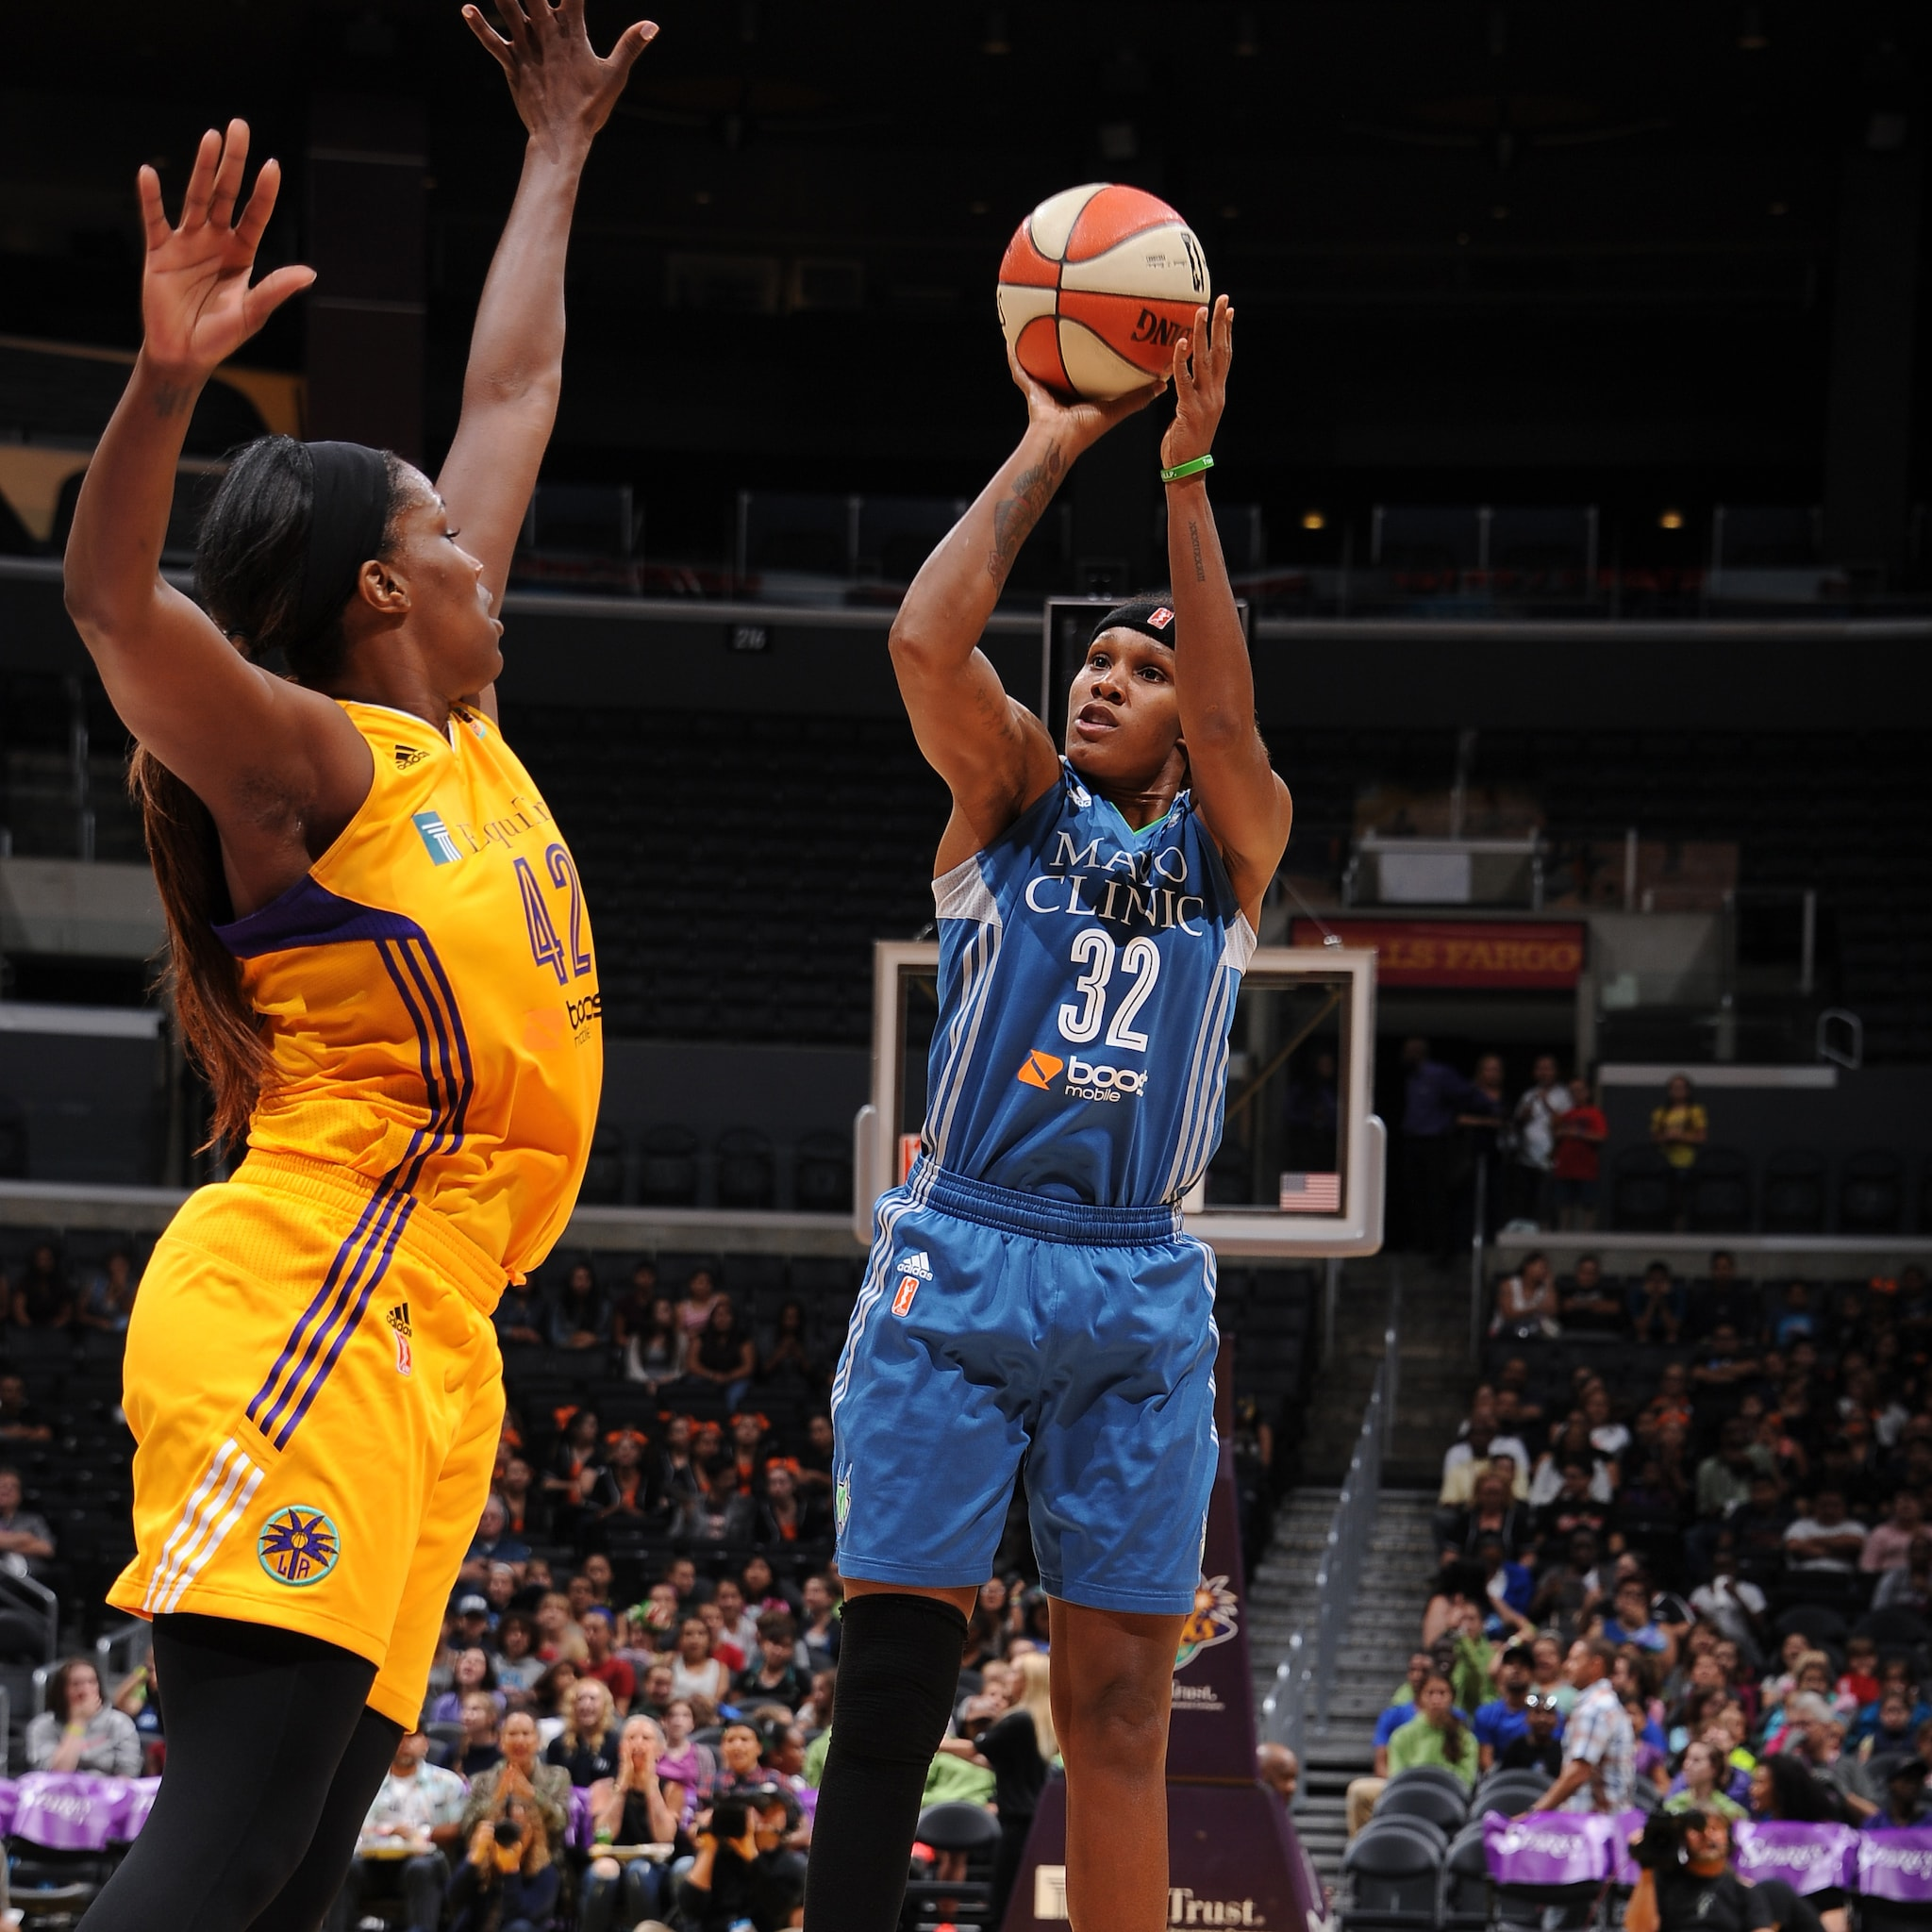 Lynx forward Rebekkah Brunson was on a hot streak entering Tuesday night, but the Sparks cooled her off.  Brunson finished with just two points and seven rebounds, her lowest totals in a game this season.